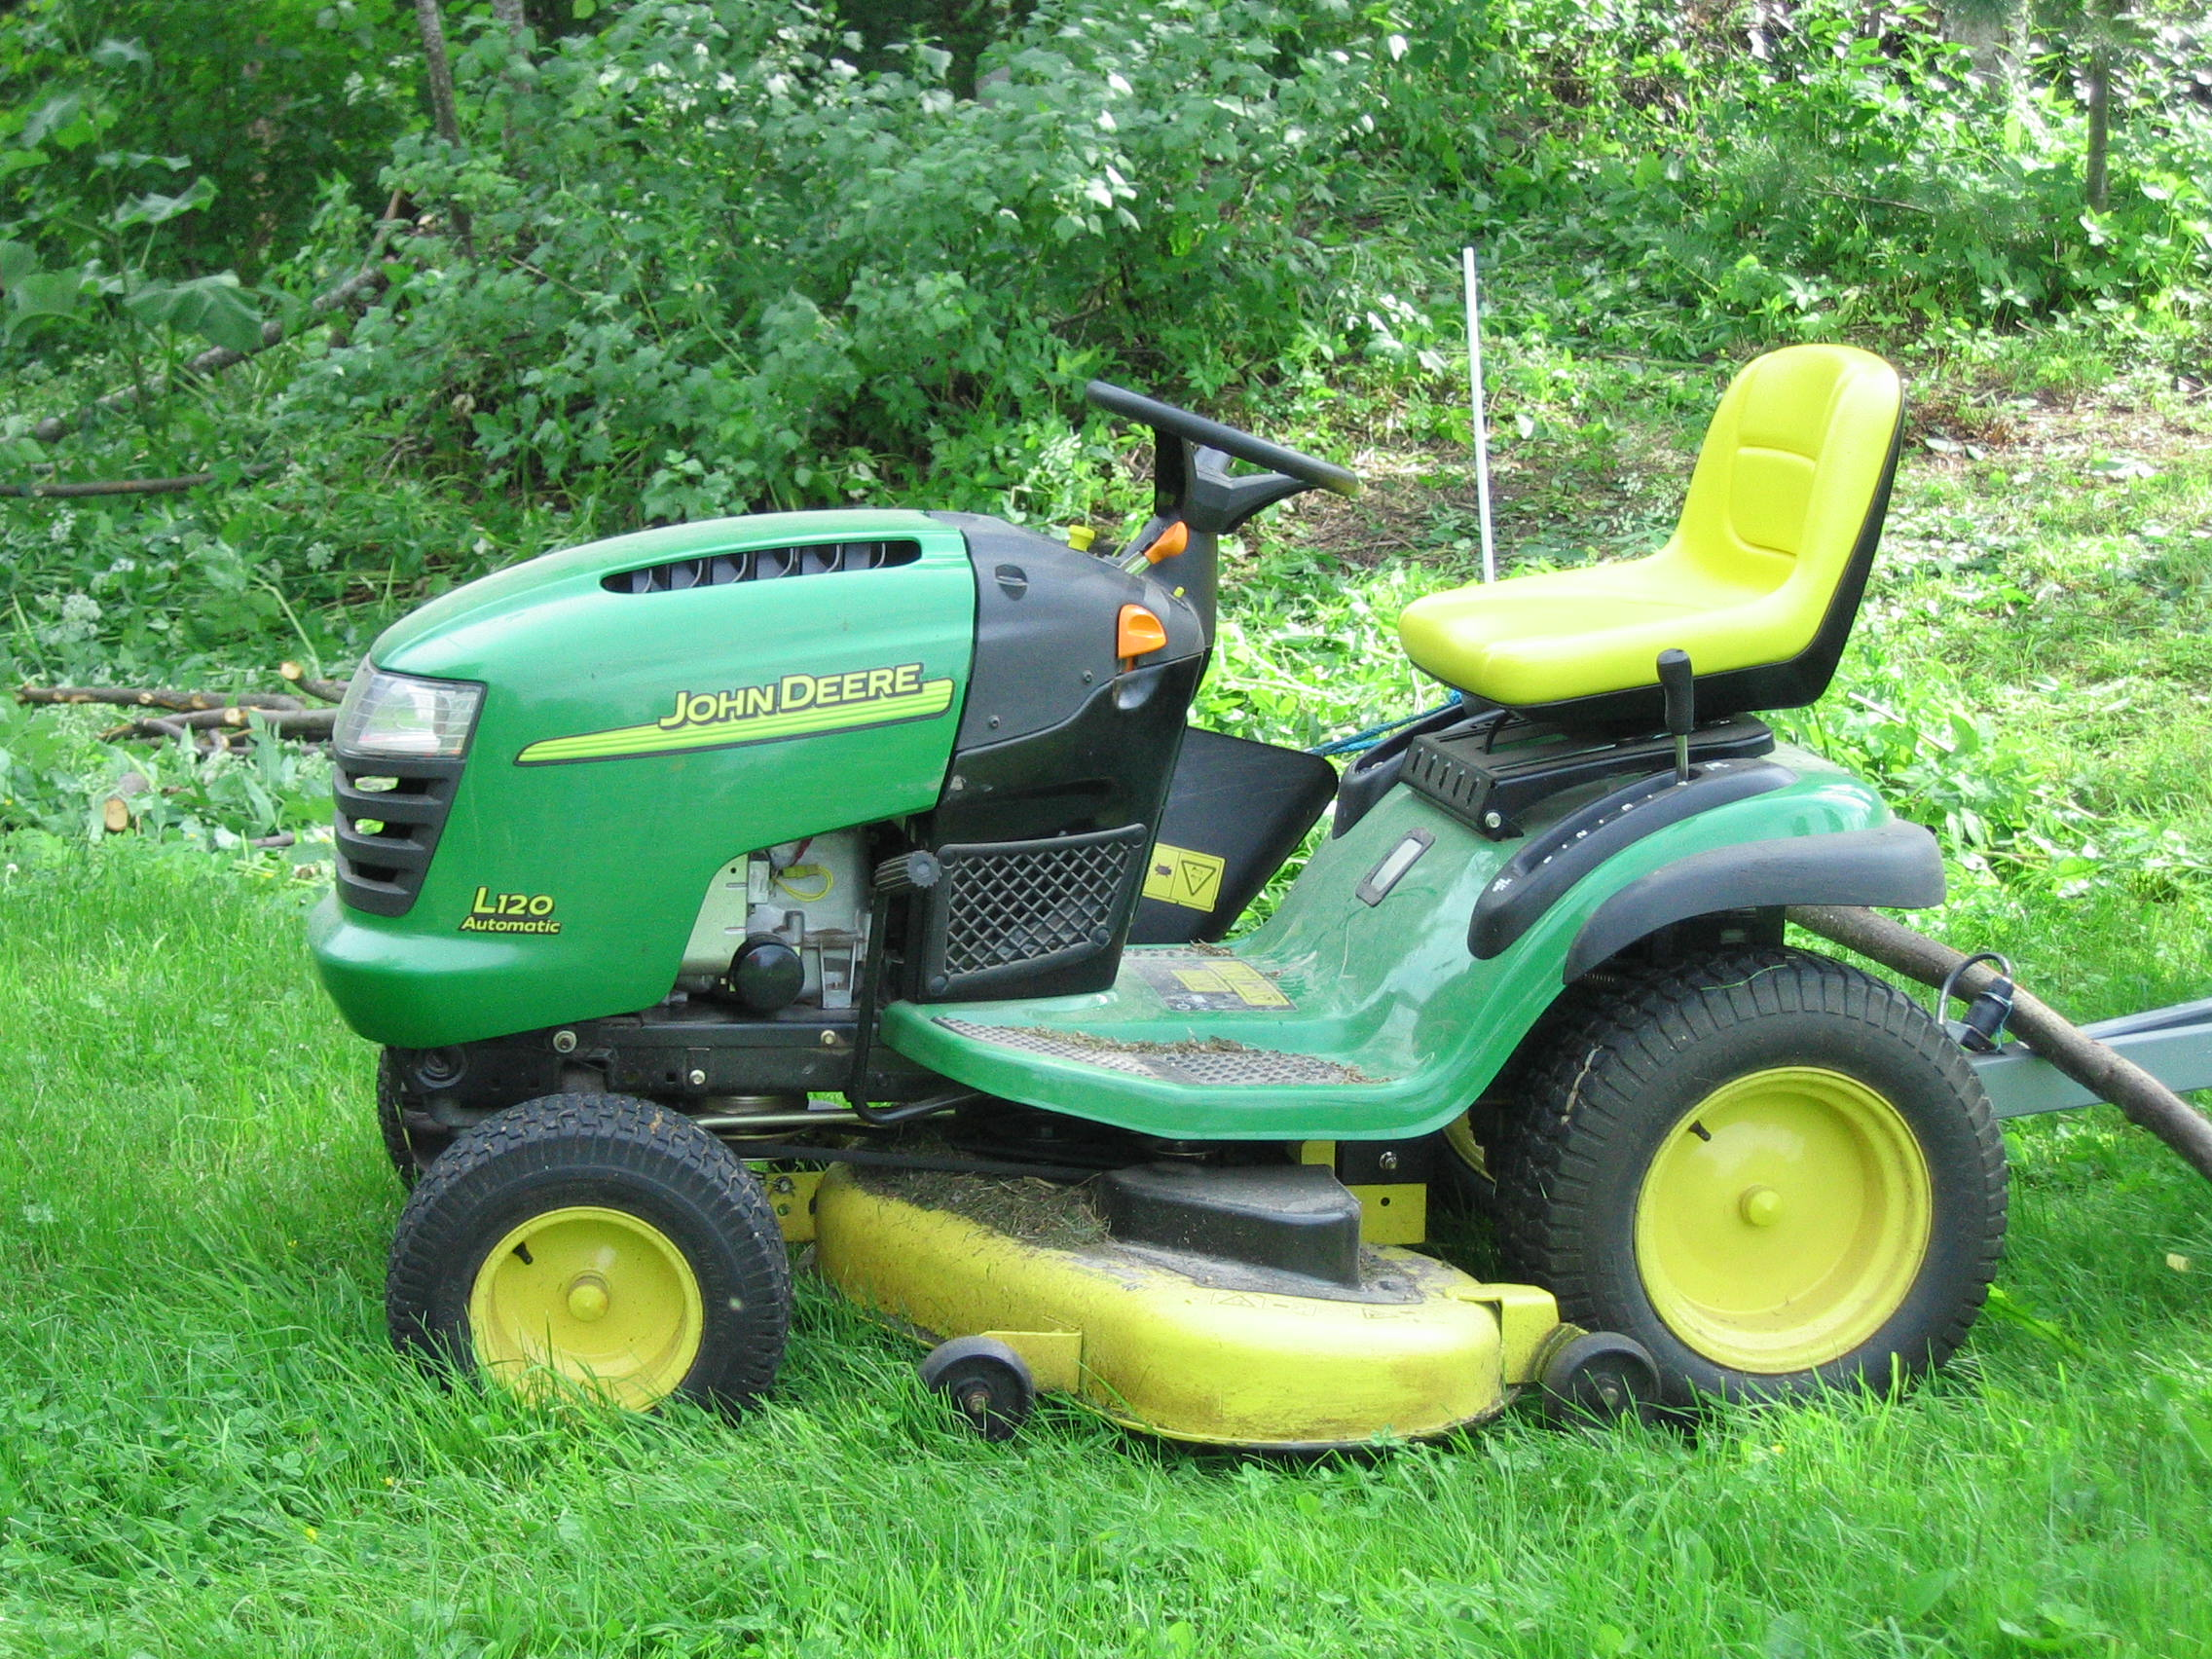 John Deere L120 Riding Mower Mowers Wiring Diagram Finding A Lawn Tractors Images Pictures Becuo